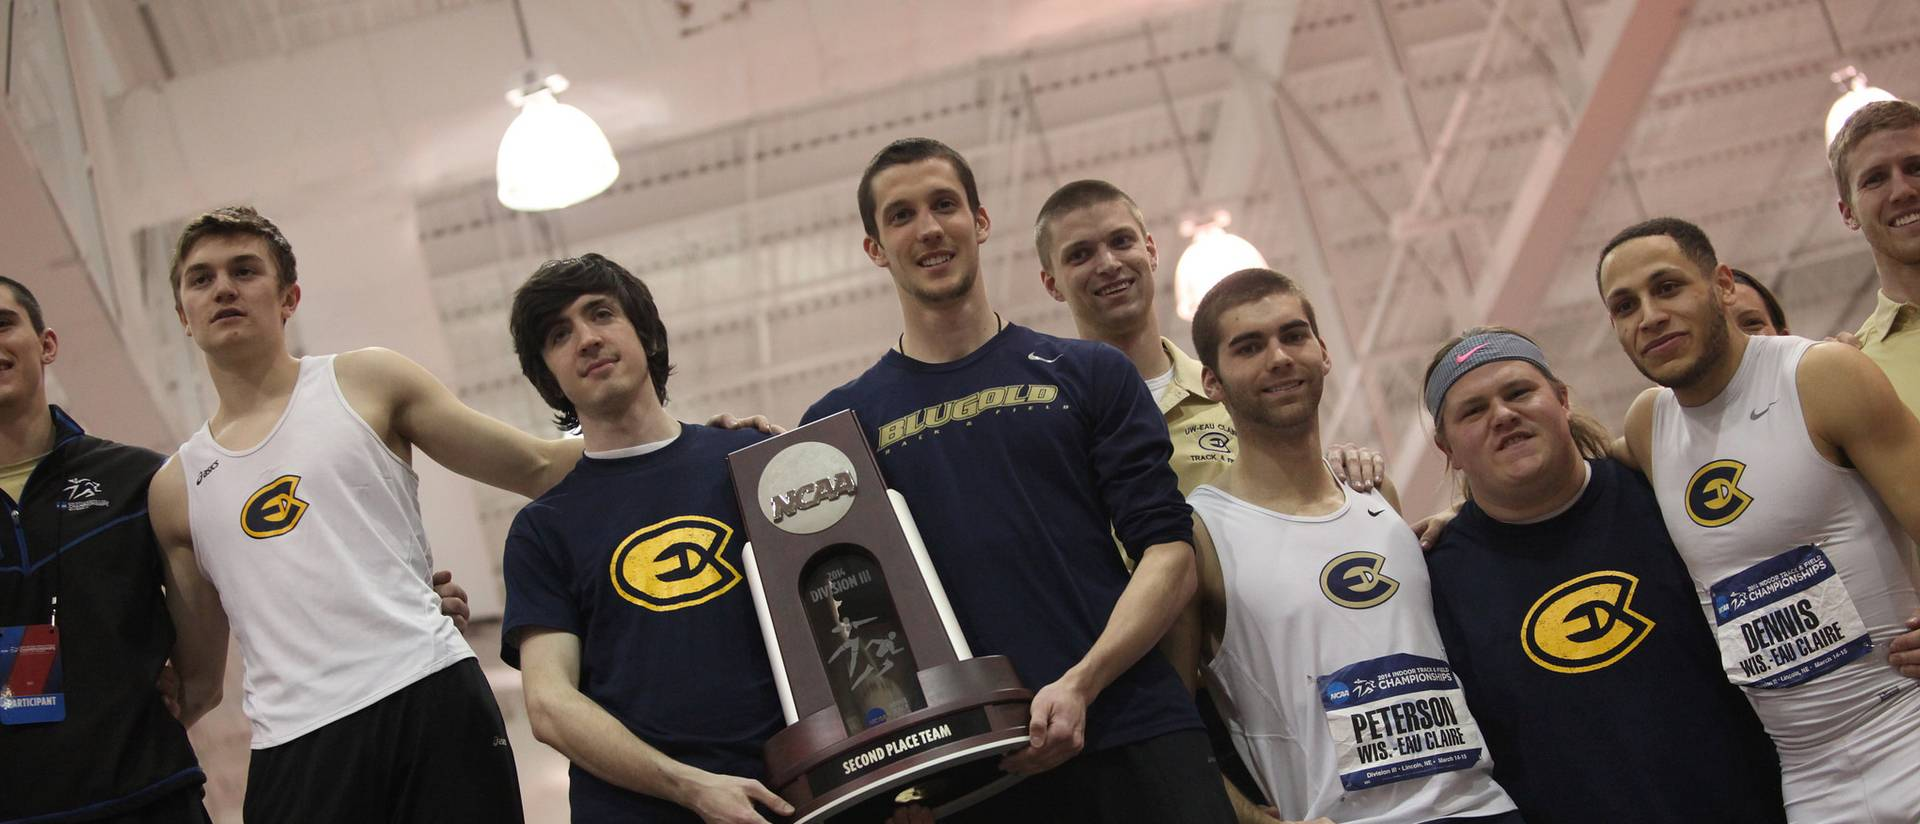 The men's indoor track & field team took second place at the NCAA Division III championship, tying its best finish in program history.